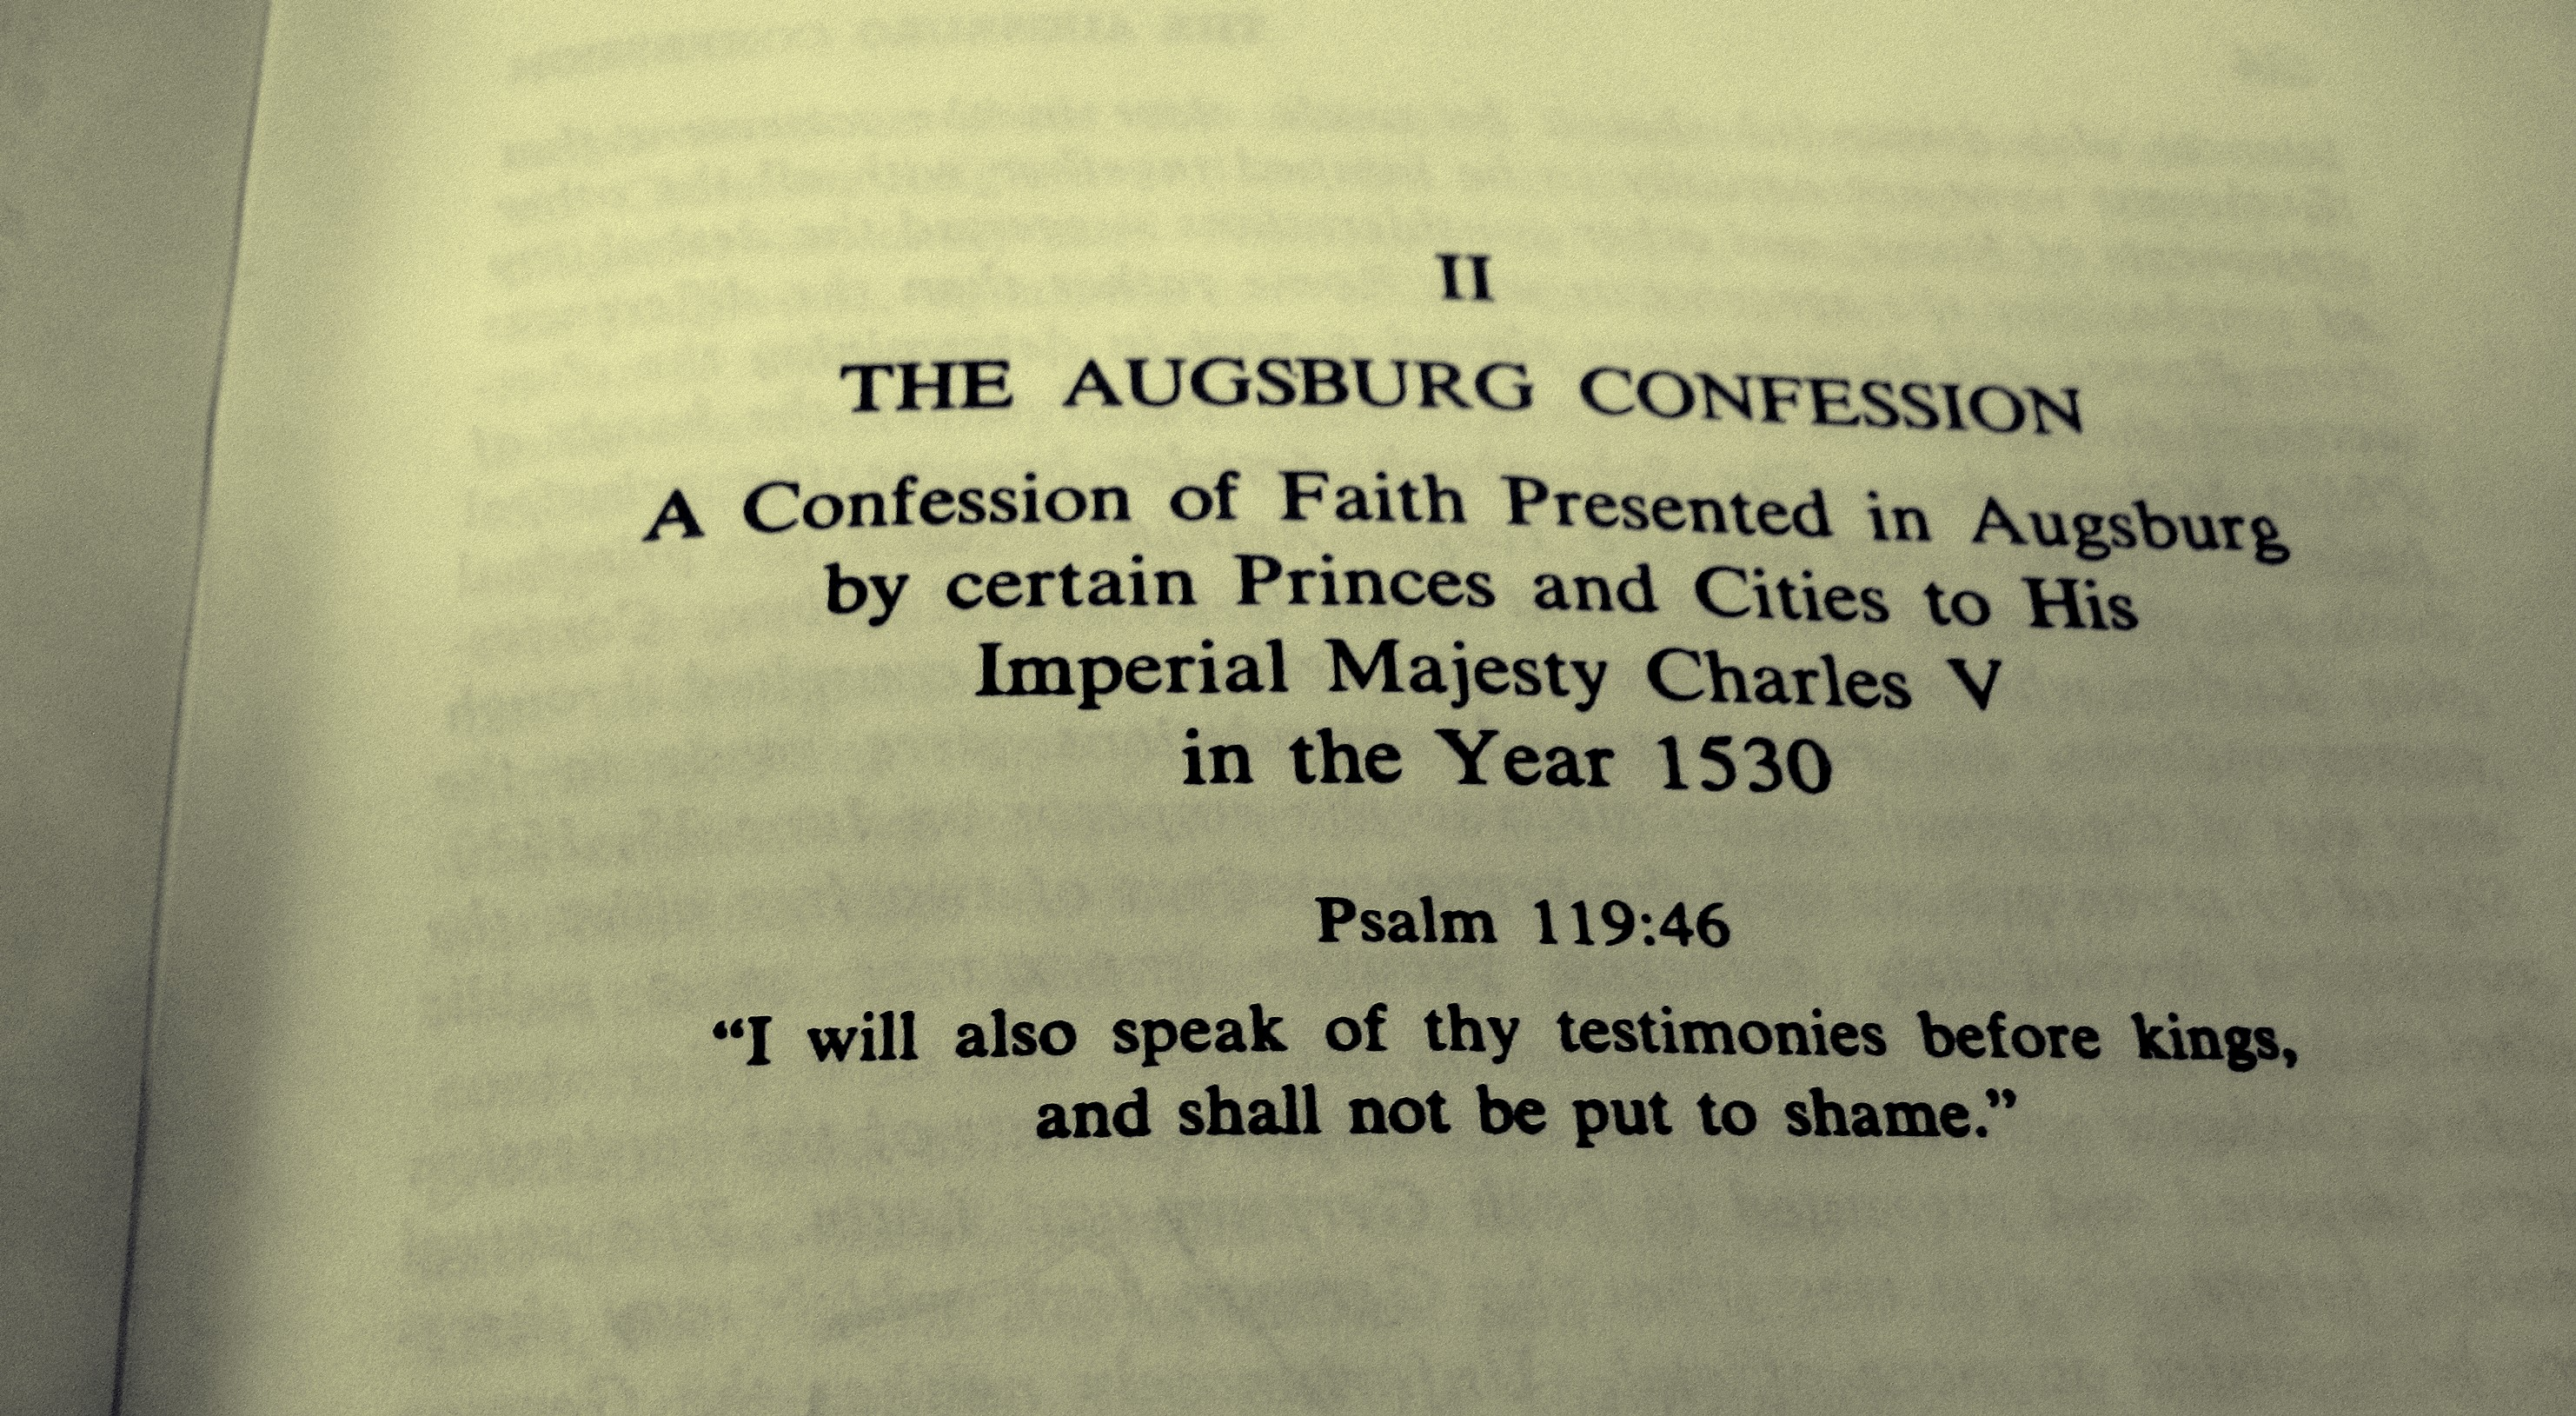 Lutheran Beliefs: The Augsburg Confession | Immanuel ...